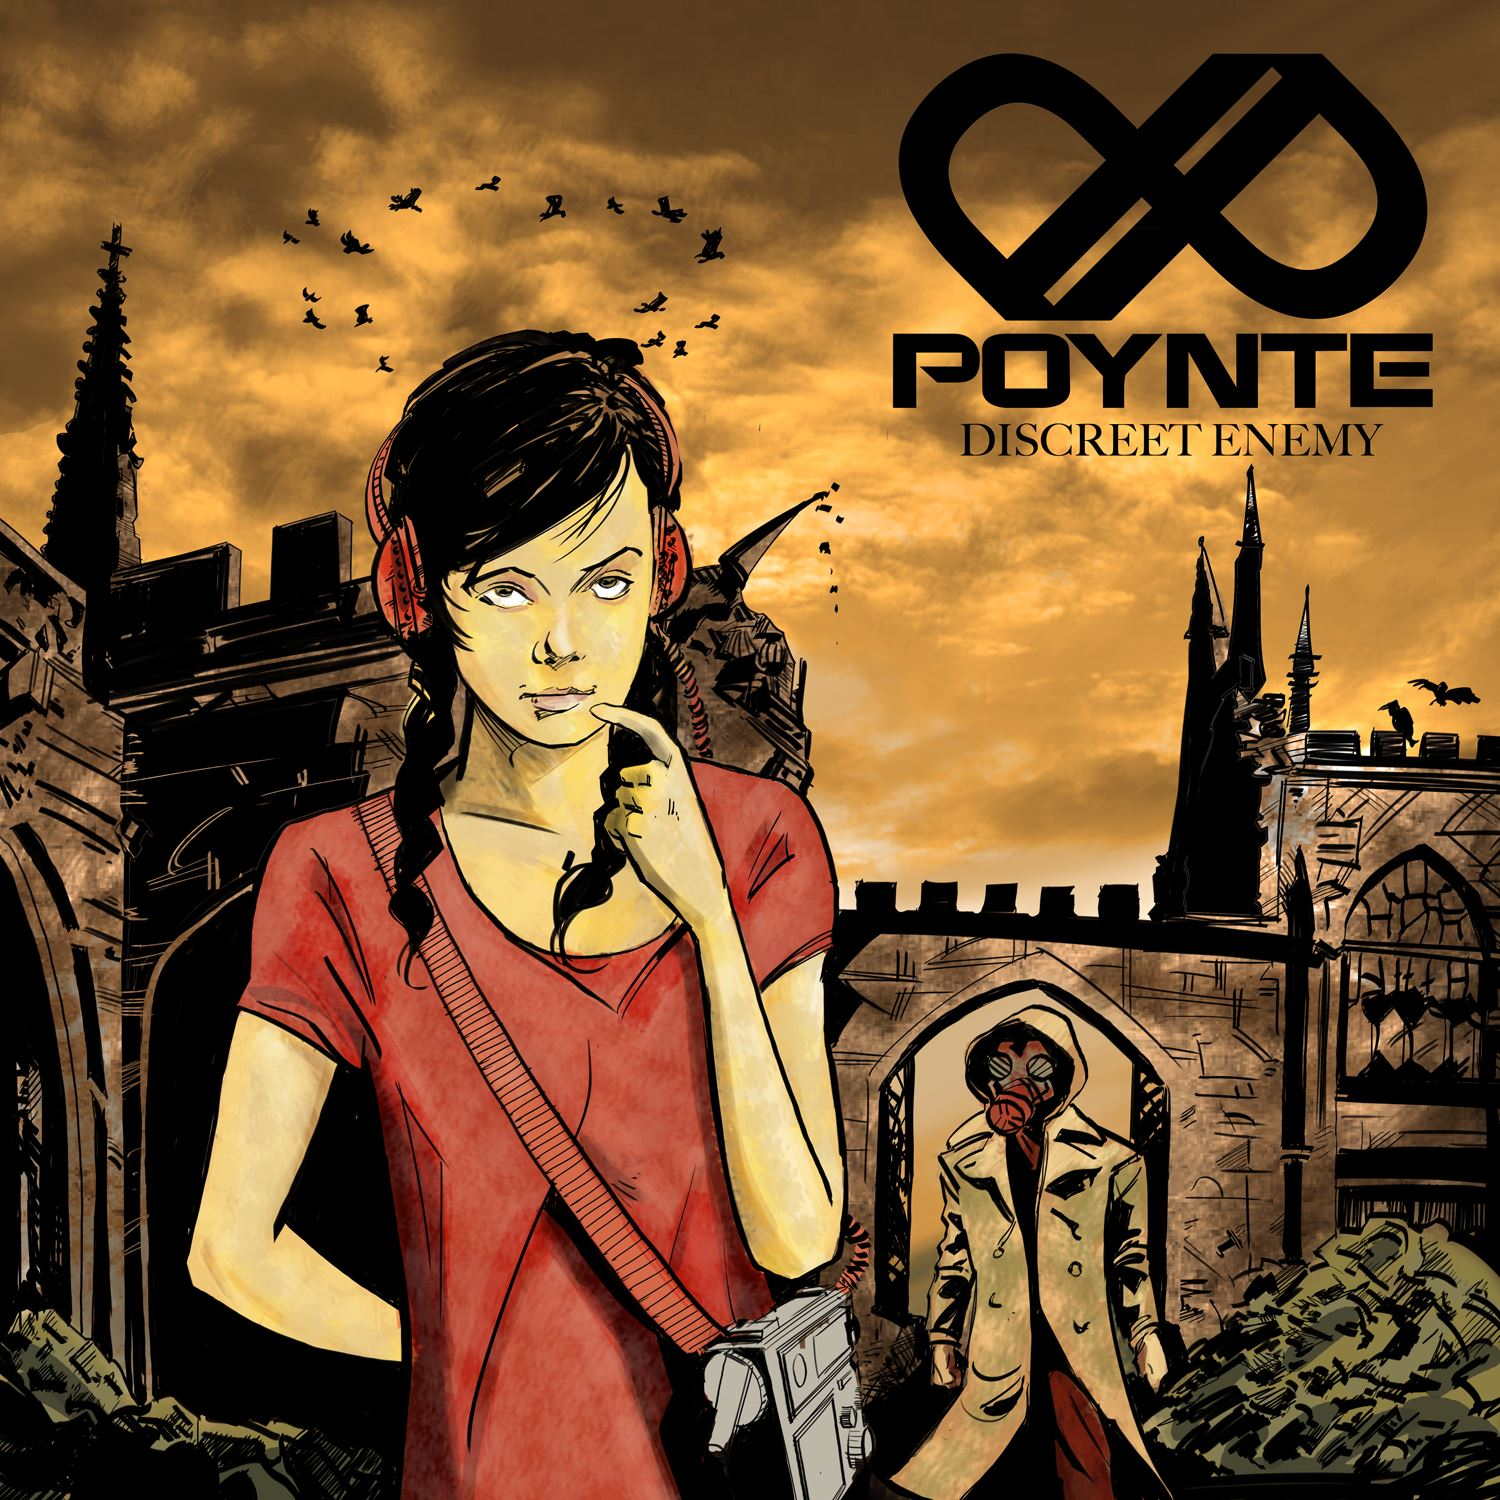 POYNTE – Discreet Enemy (Album Review)